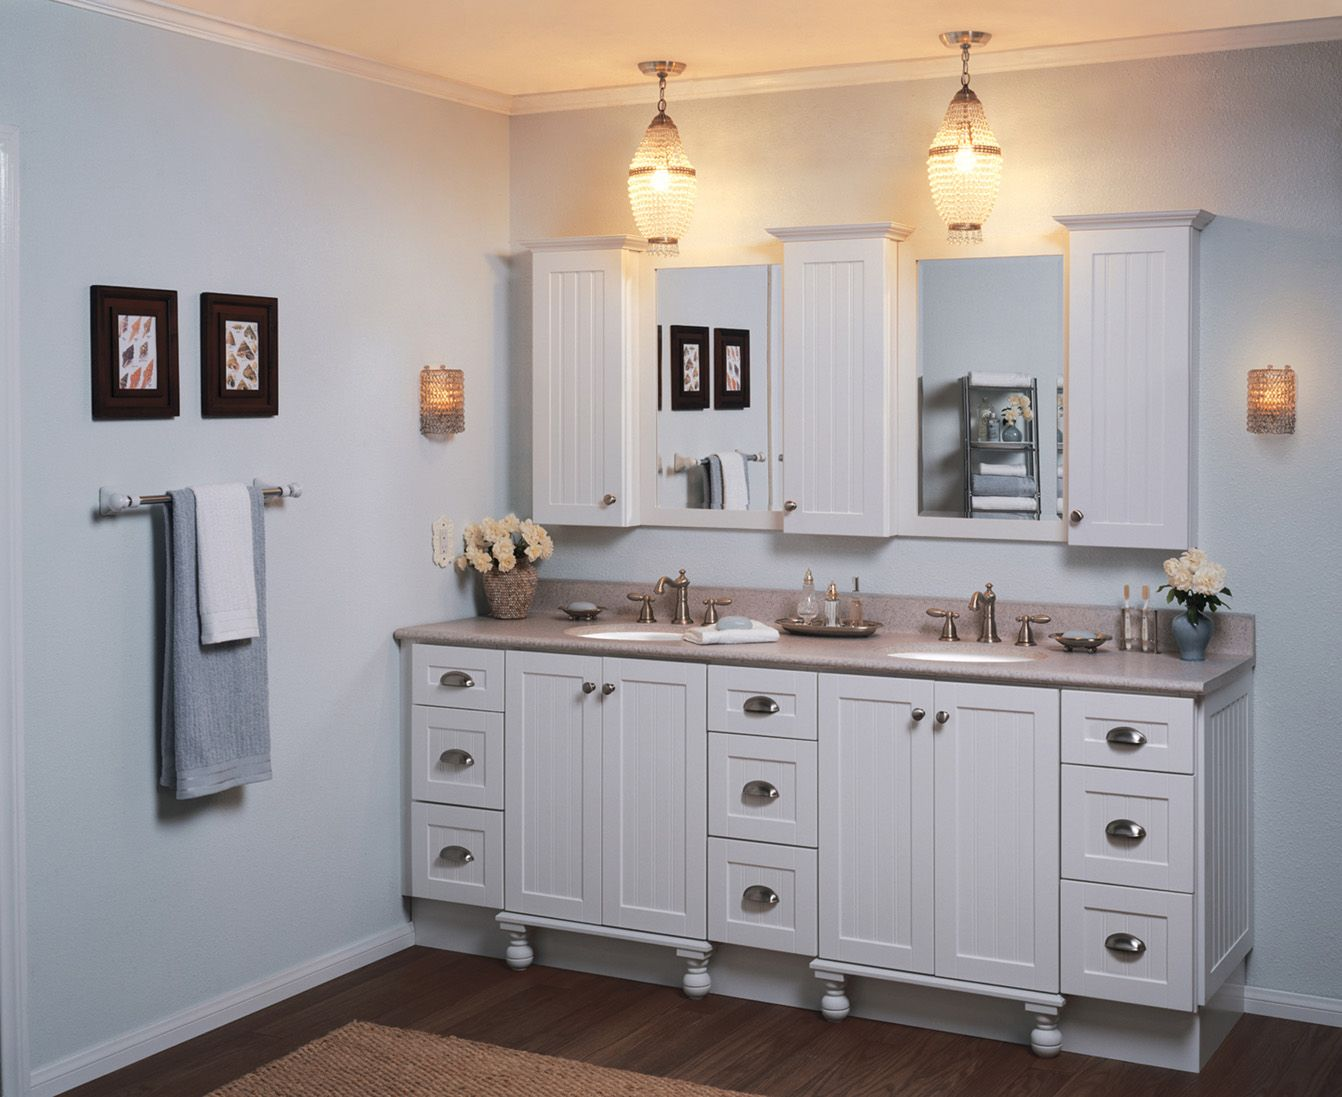 Bathroom Mirrors Over Vanity | Ideas Using Mirrors, Wall Hutches And  Medicine Cabinets For Bathroom